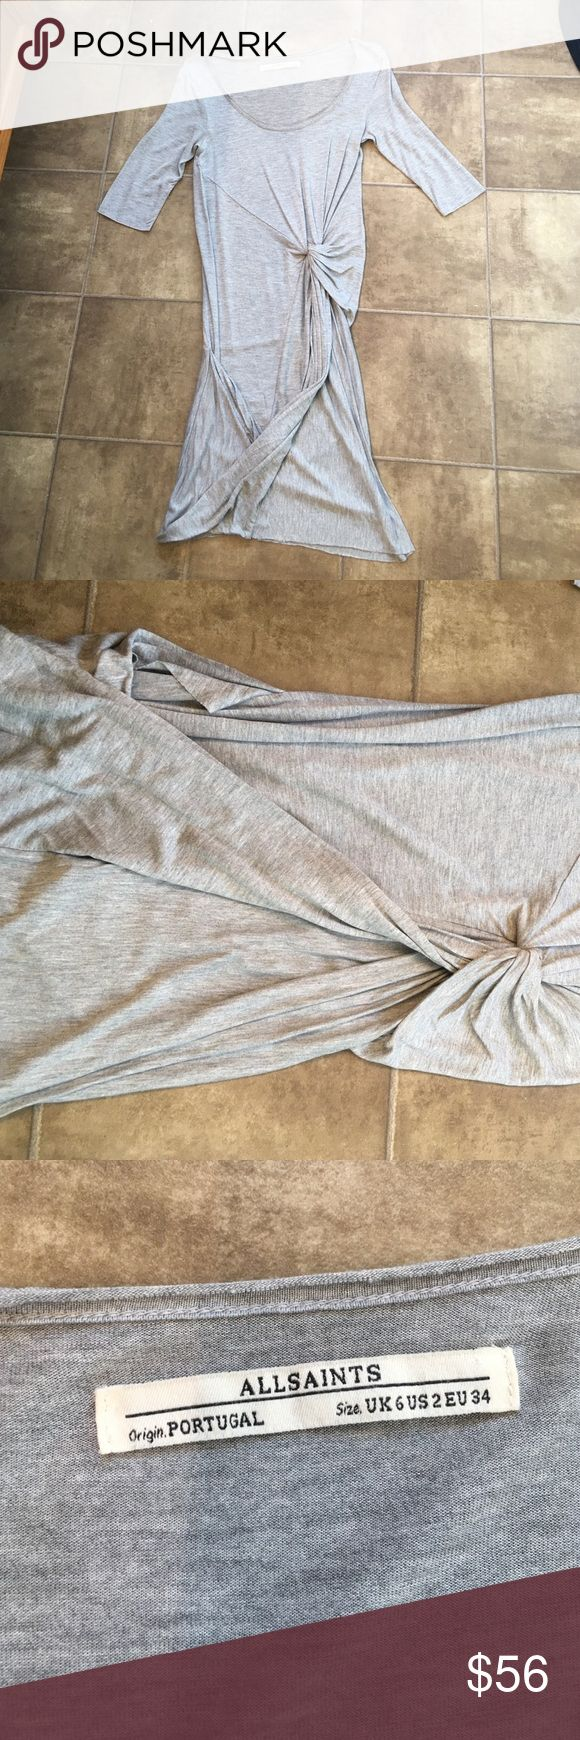 ALLSAINTS DRESS. Worn once! Soft material and gorgeous. Lightweight material. So cute All Saints Dresses Mini